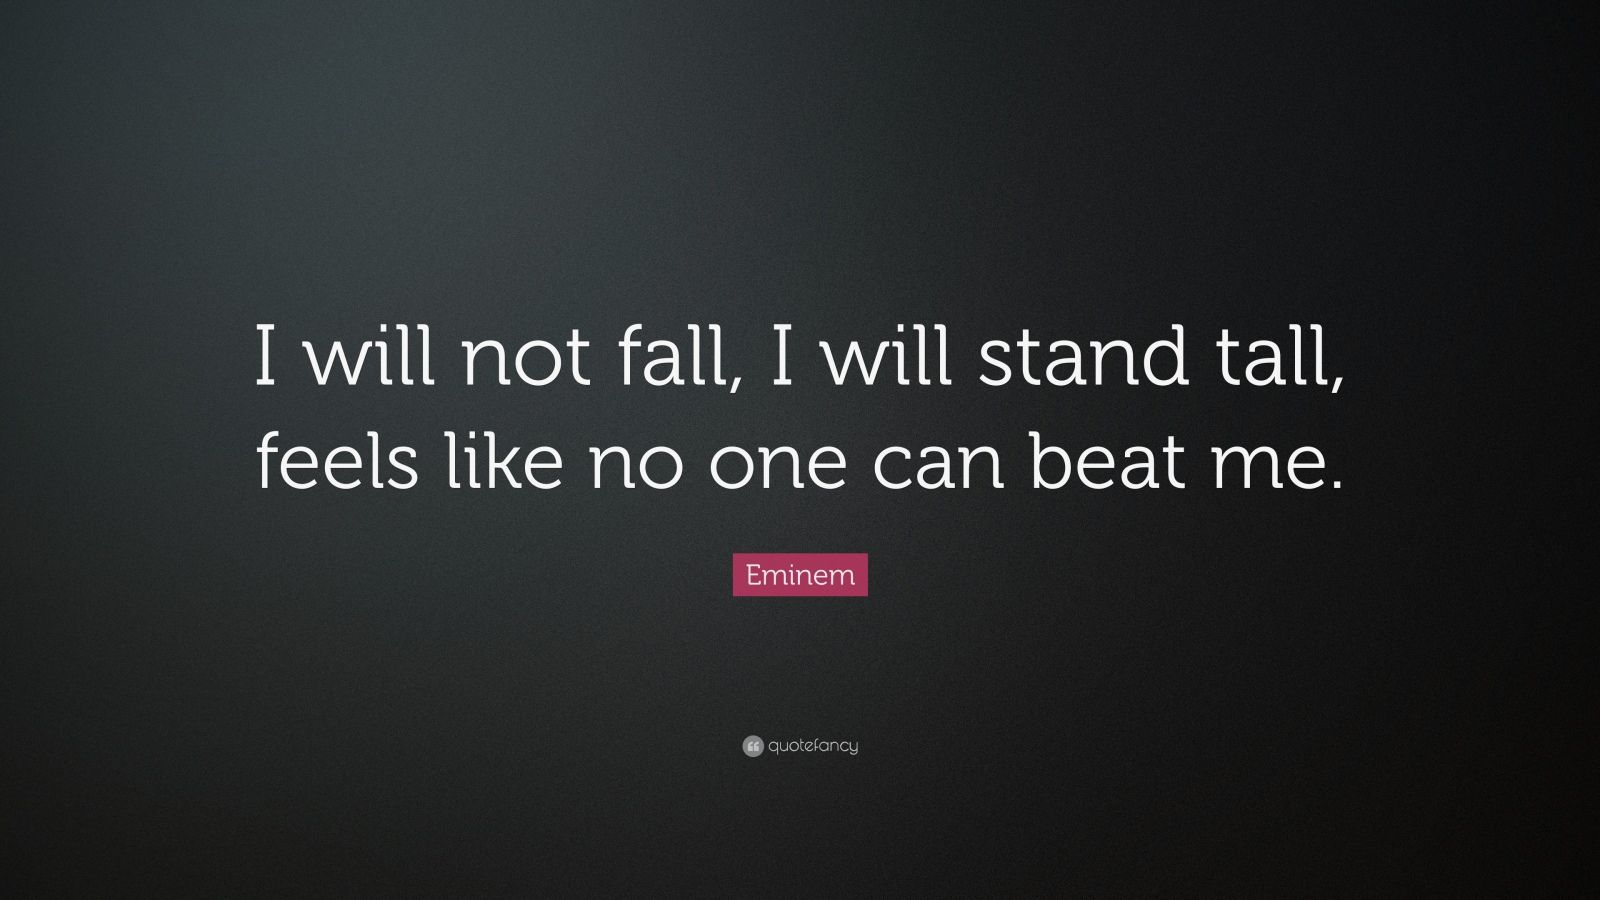 Eminem Quote: U201cI Will Not Fall, I Will Stand Tall, Feels Like